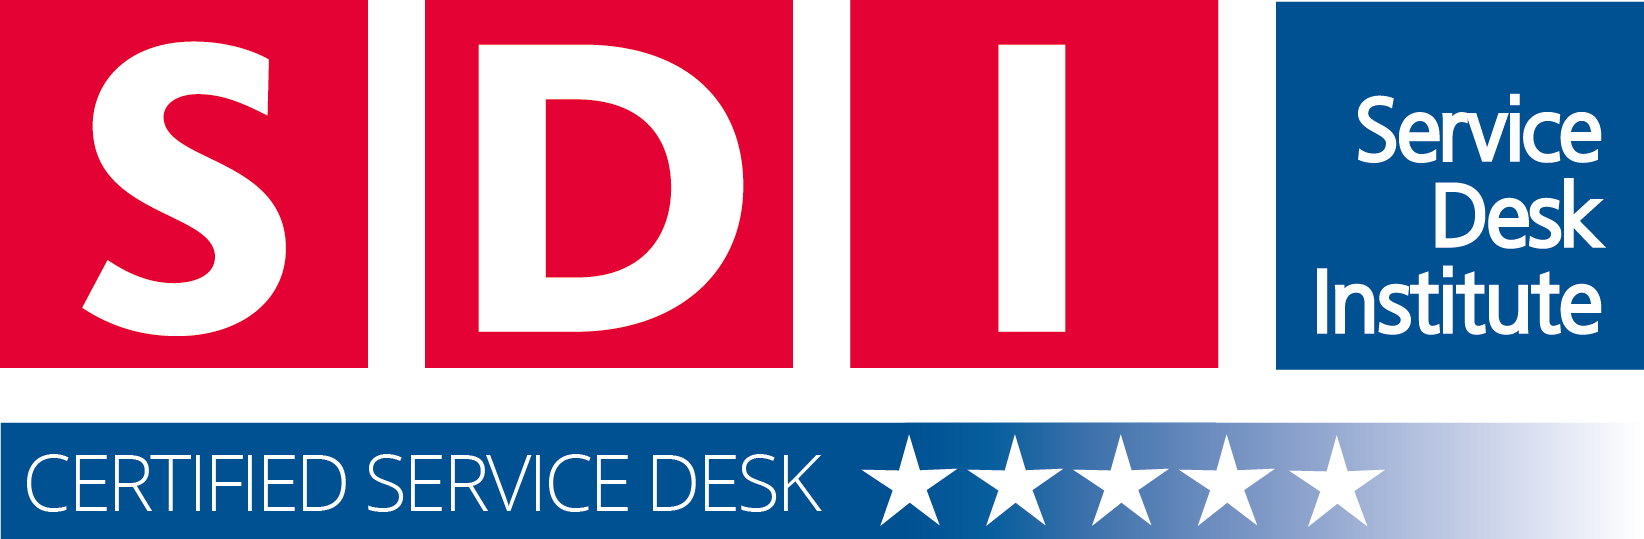 Cgi retains 5 star service desk accreditation for record fifth cgi retains 5 star service desk accreditation for record fifth consecutive year 1betcityfo Gallery